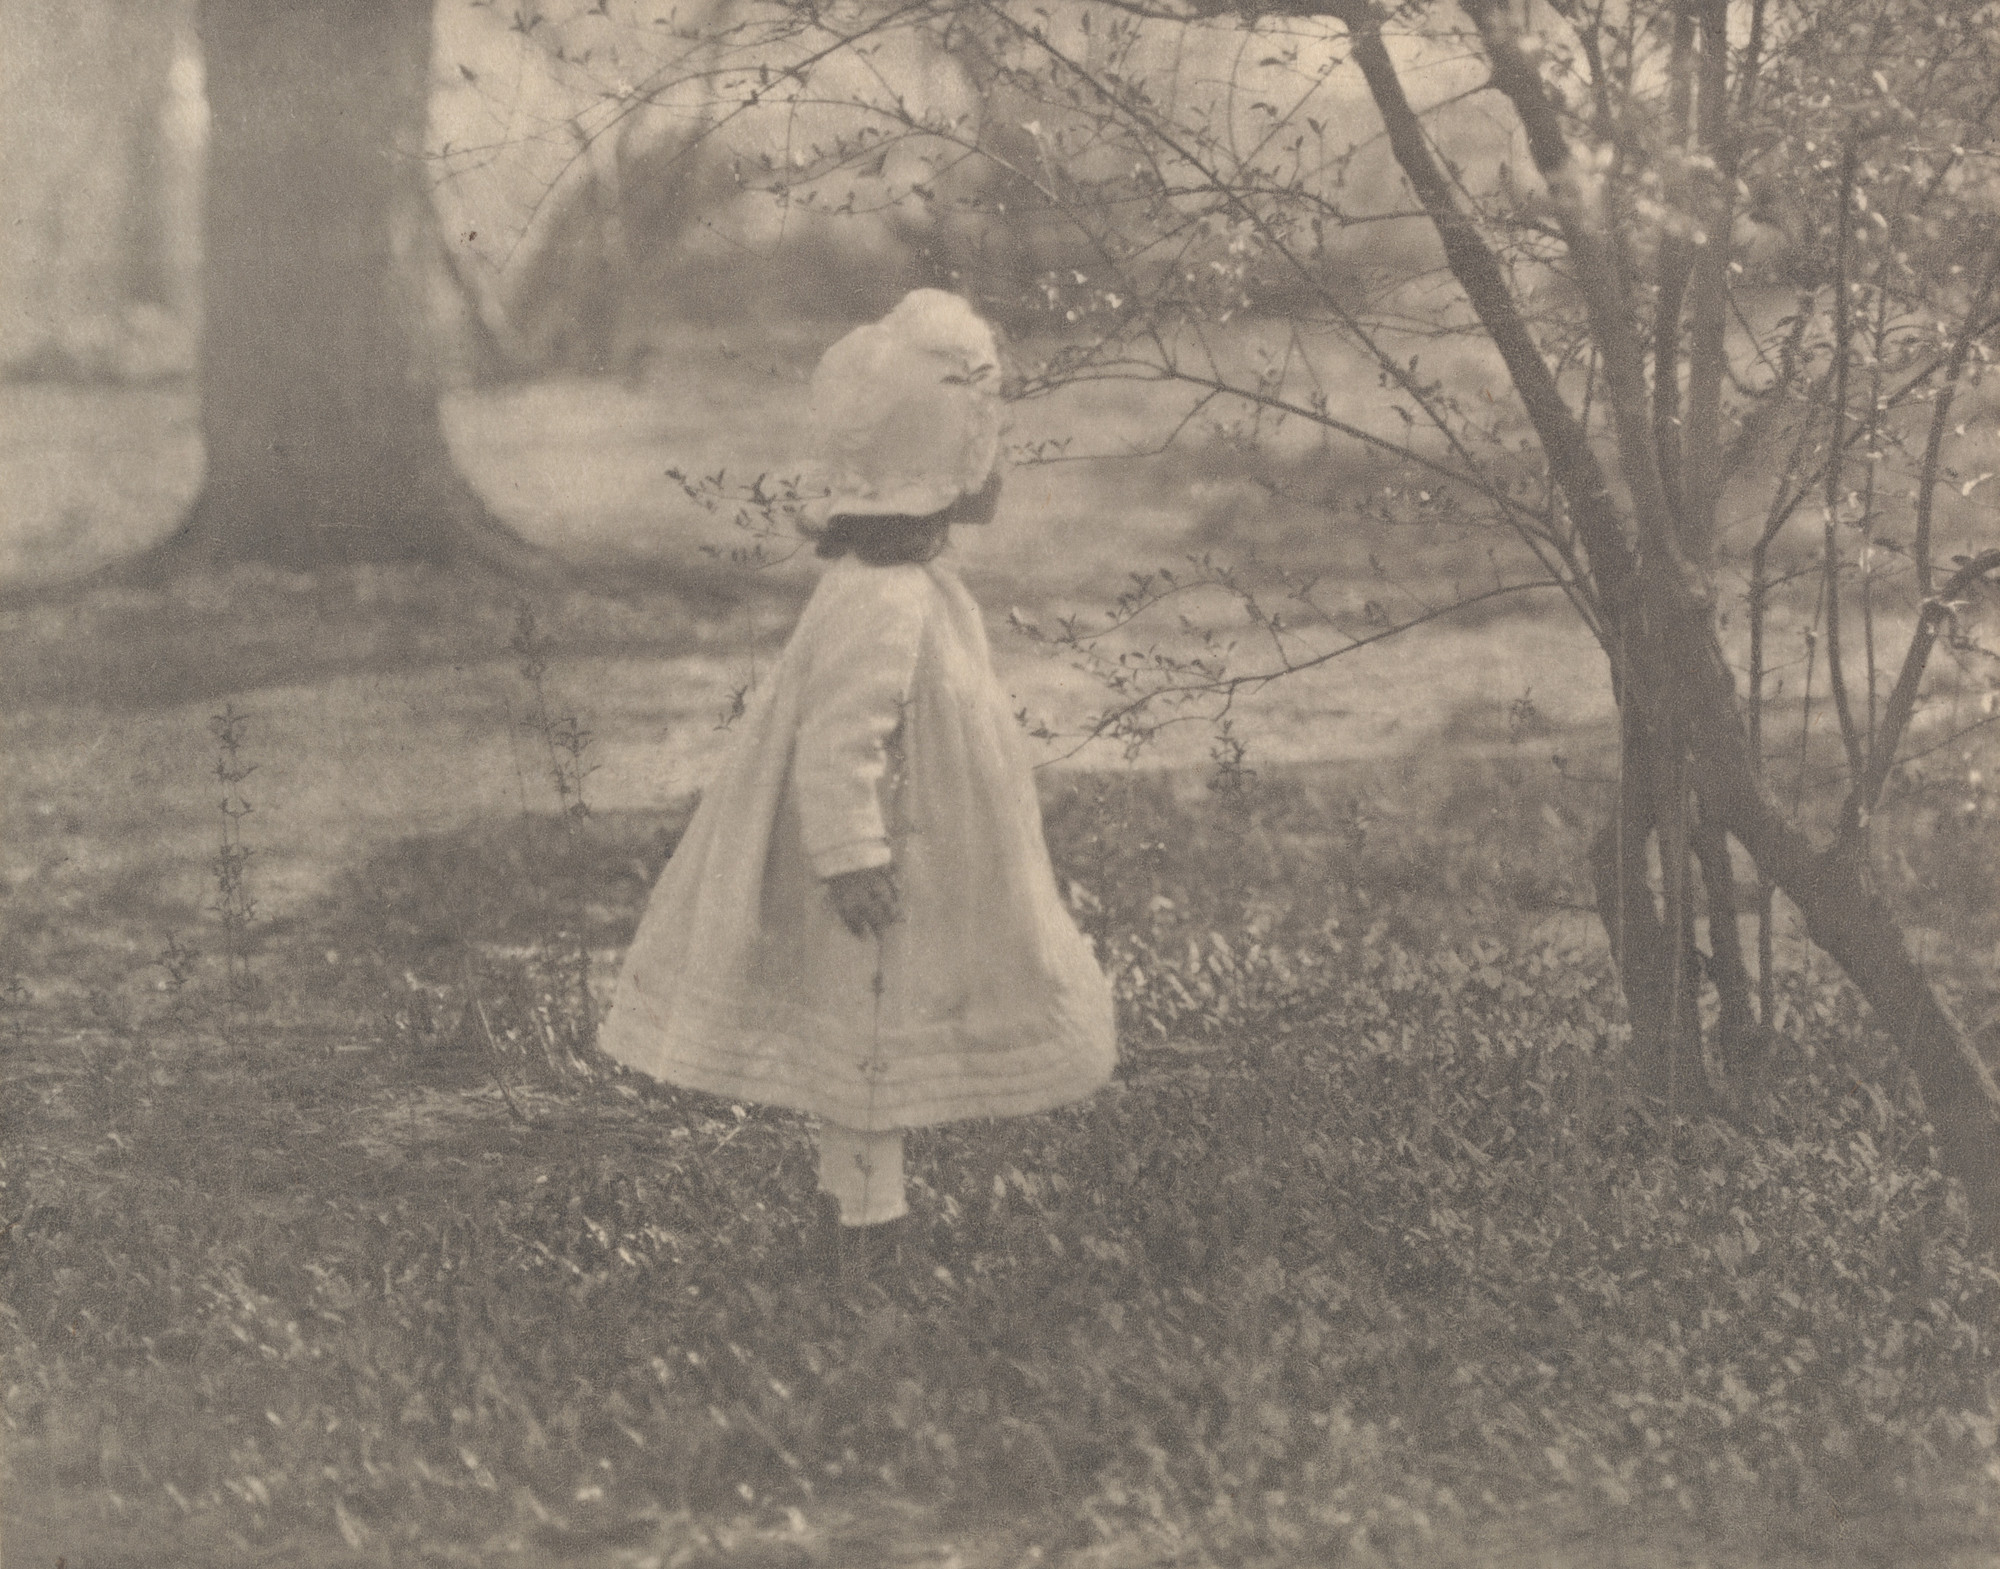 Alfred Stieglitz. Kitty Stieglitz, Central Park, New York. 1901